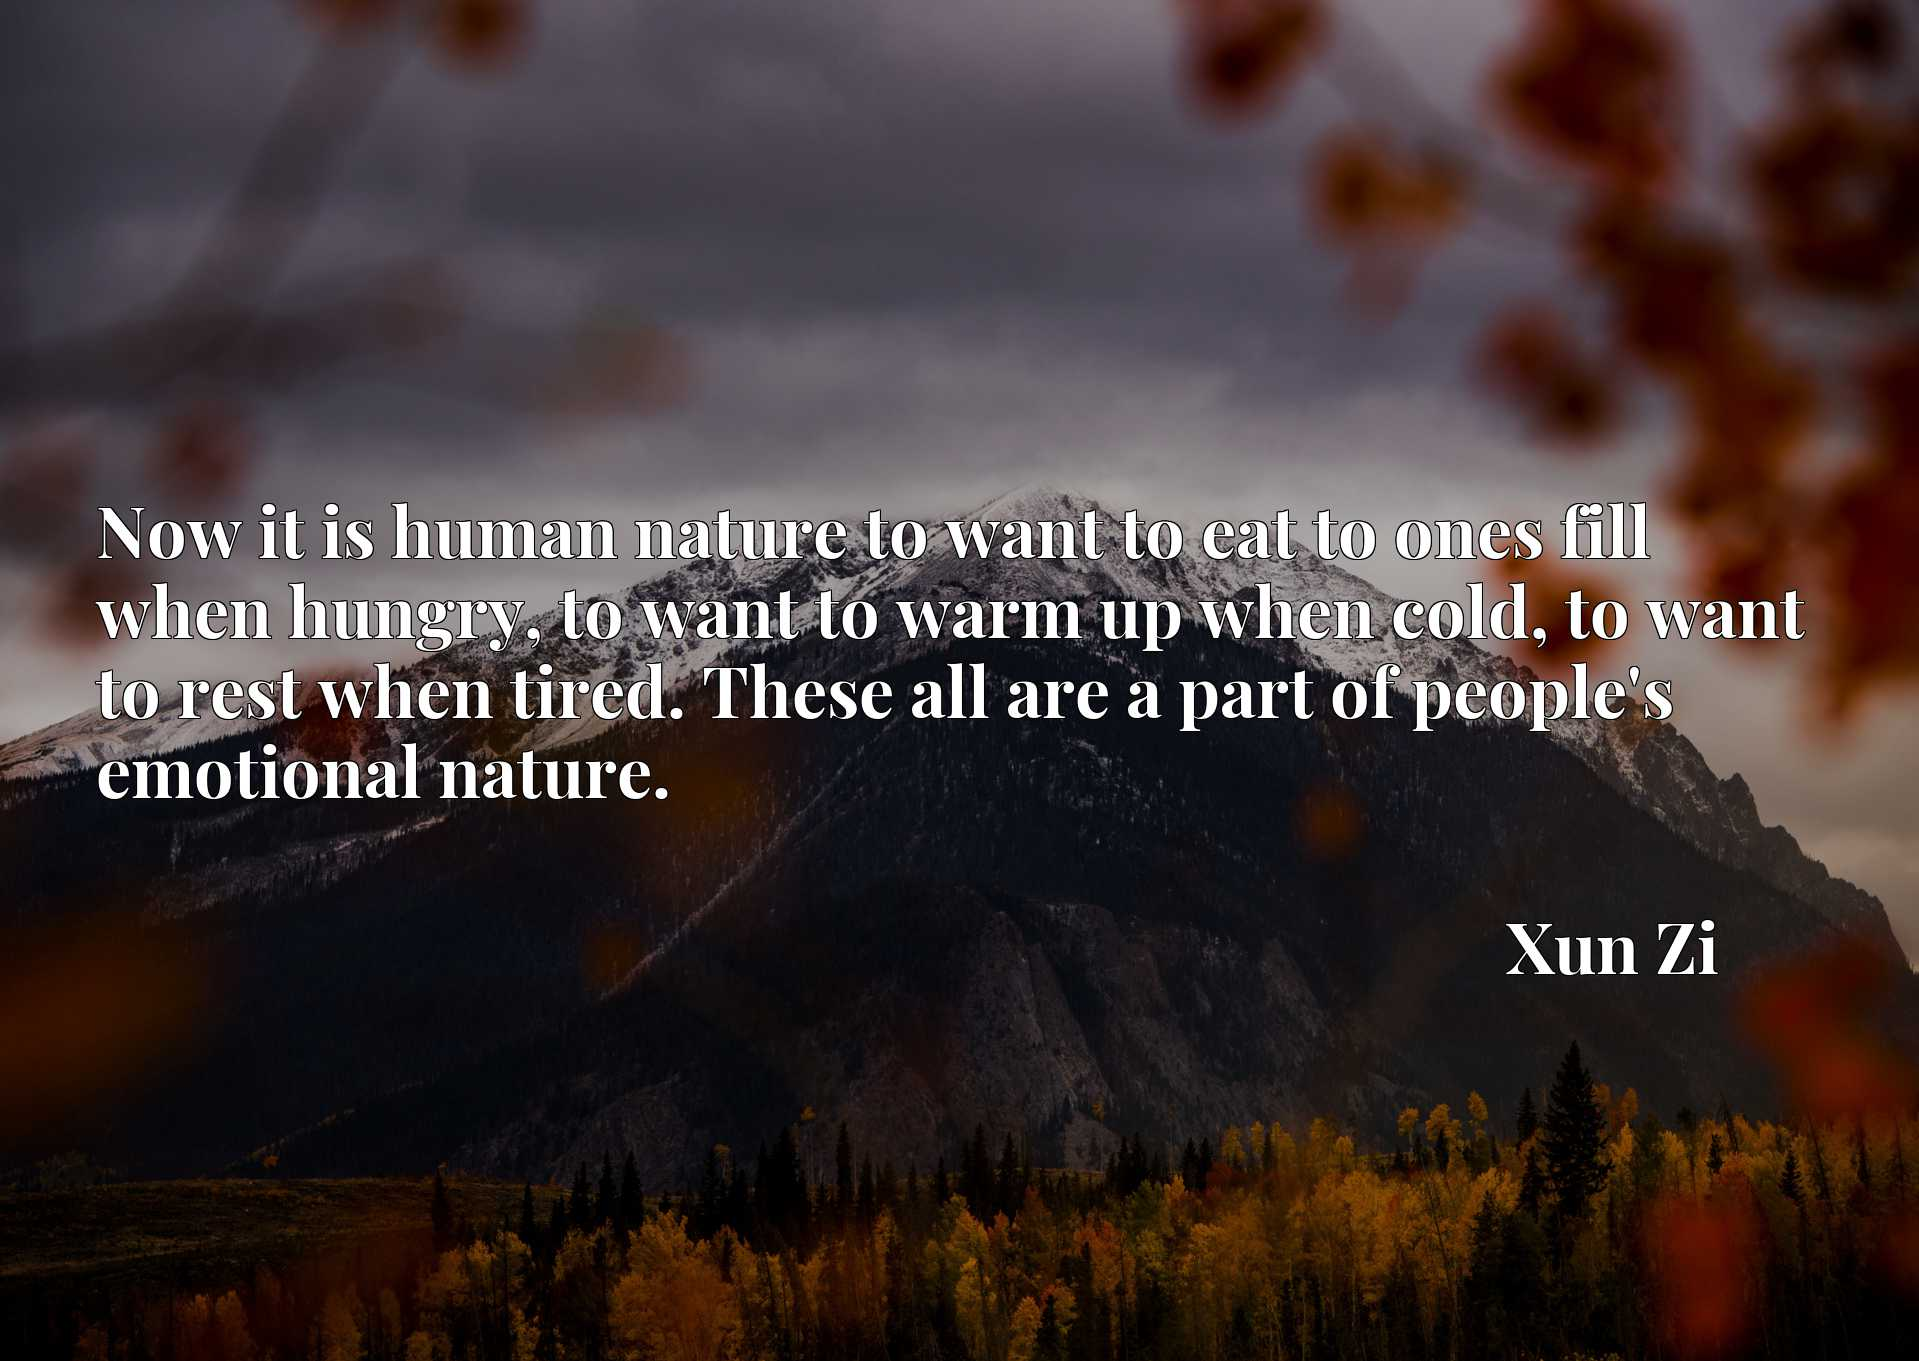 Quote Picture :Now it is human nature to want to eat to ones fill when hungry, to want to warm up when cold, to want to rest when tired. These all are a part of people's emotional nature.